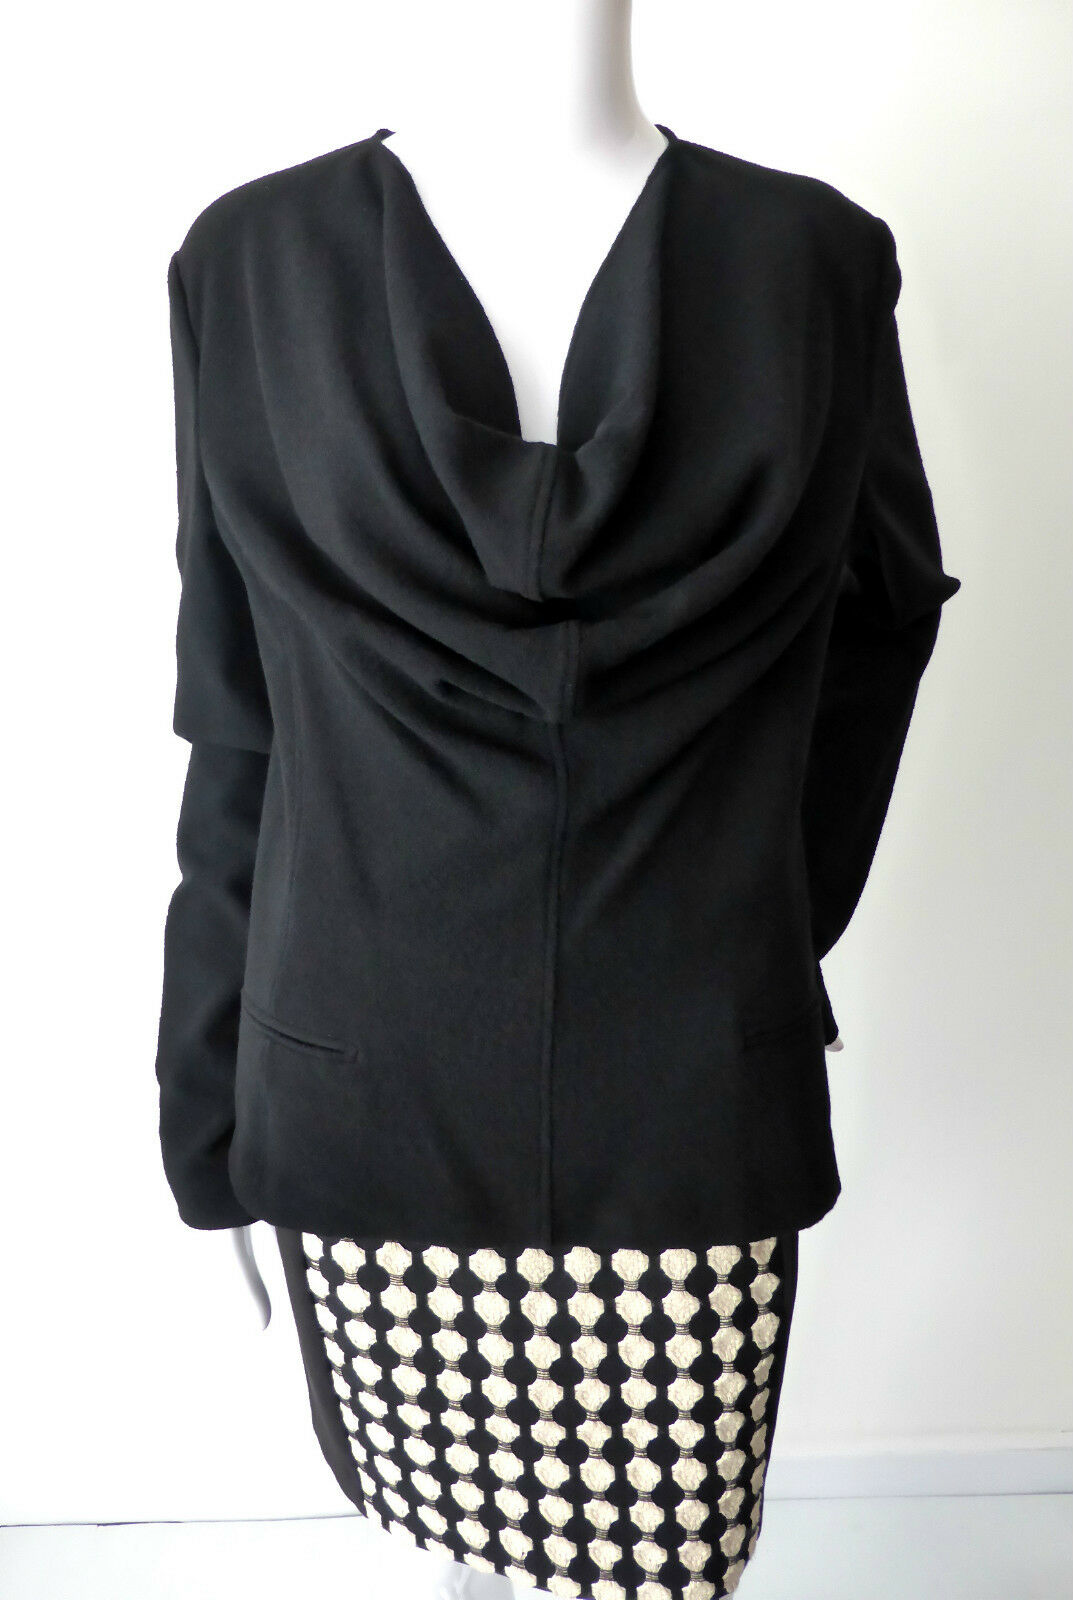 JEAN PAUL GAULTIER Long Sleeve Top  Made in Italy Size 10 - 12  IT 44 rrp $1973.